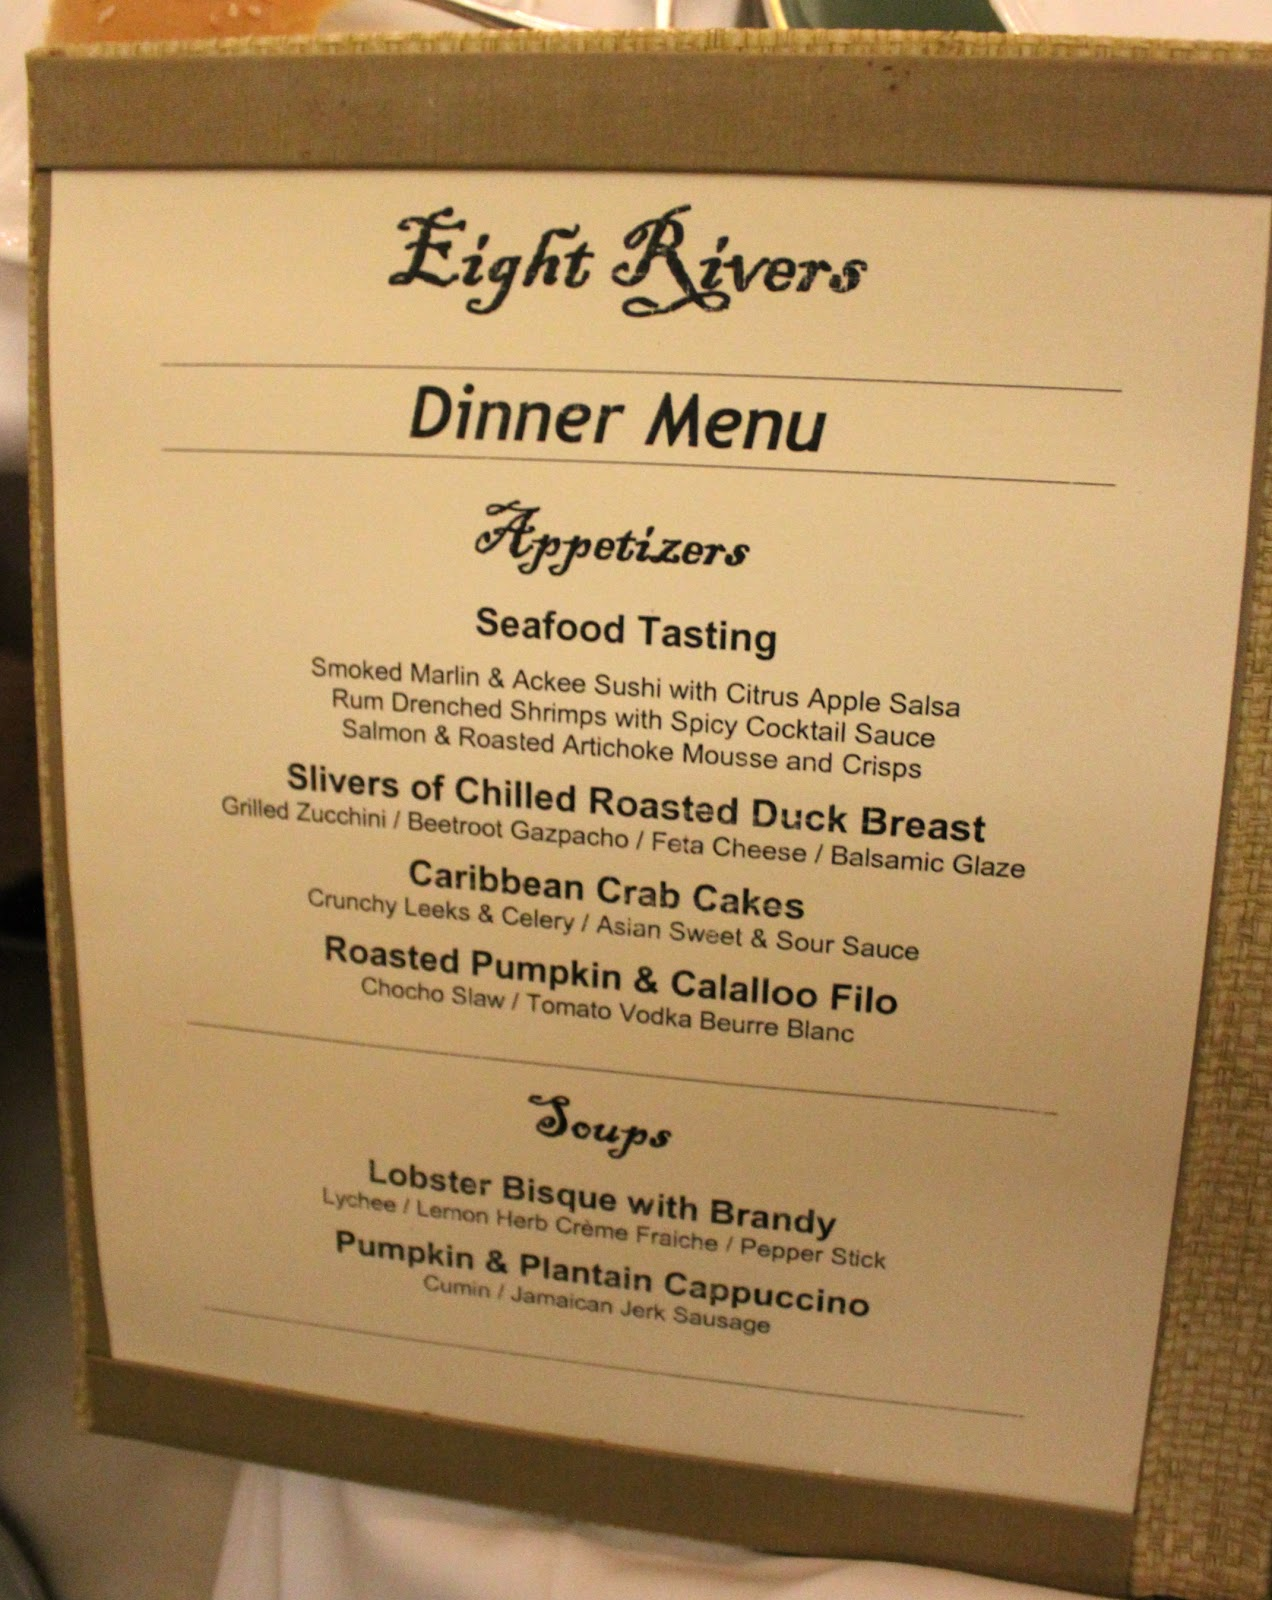 Two eat philly couples tower isle eight rivers restaurant for Ideas for dinner menu